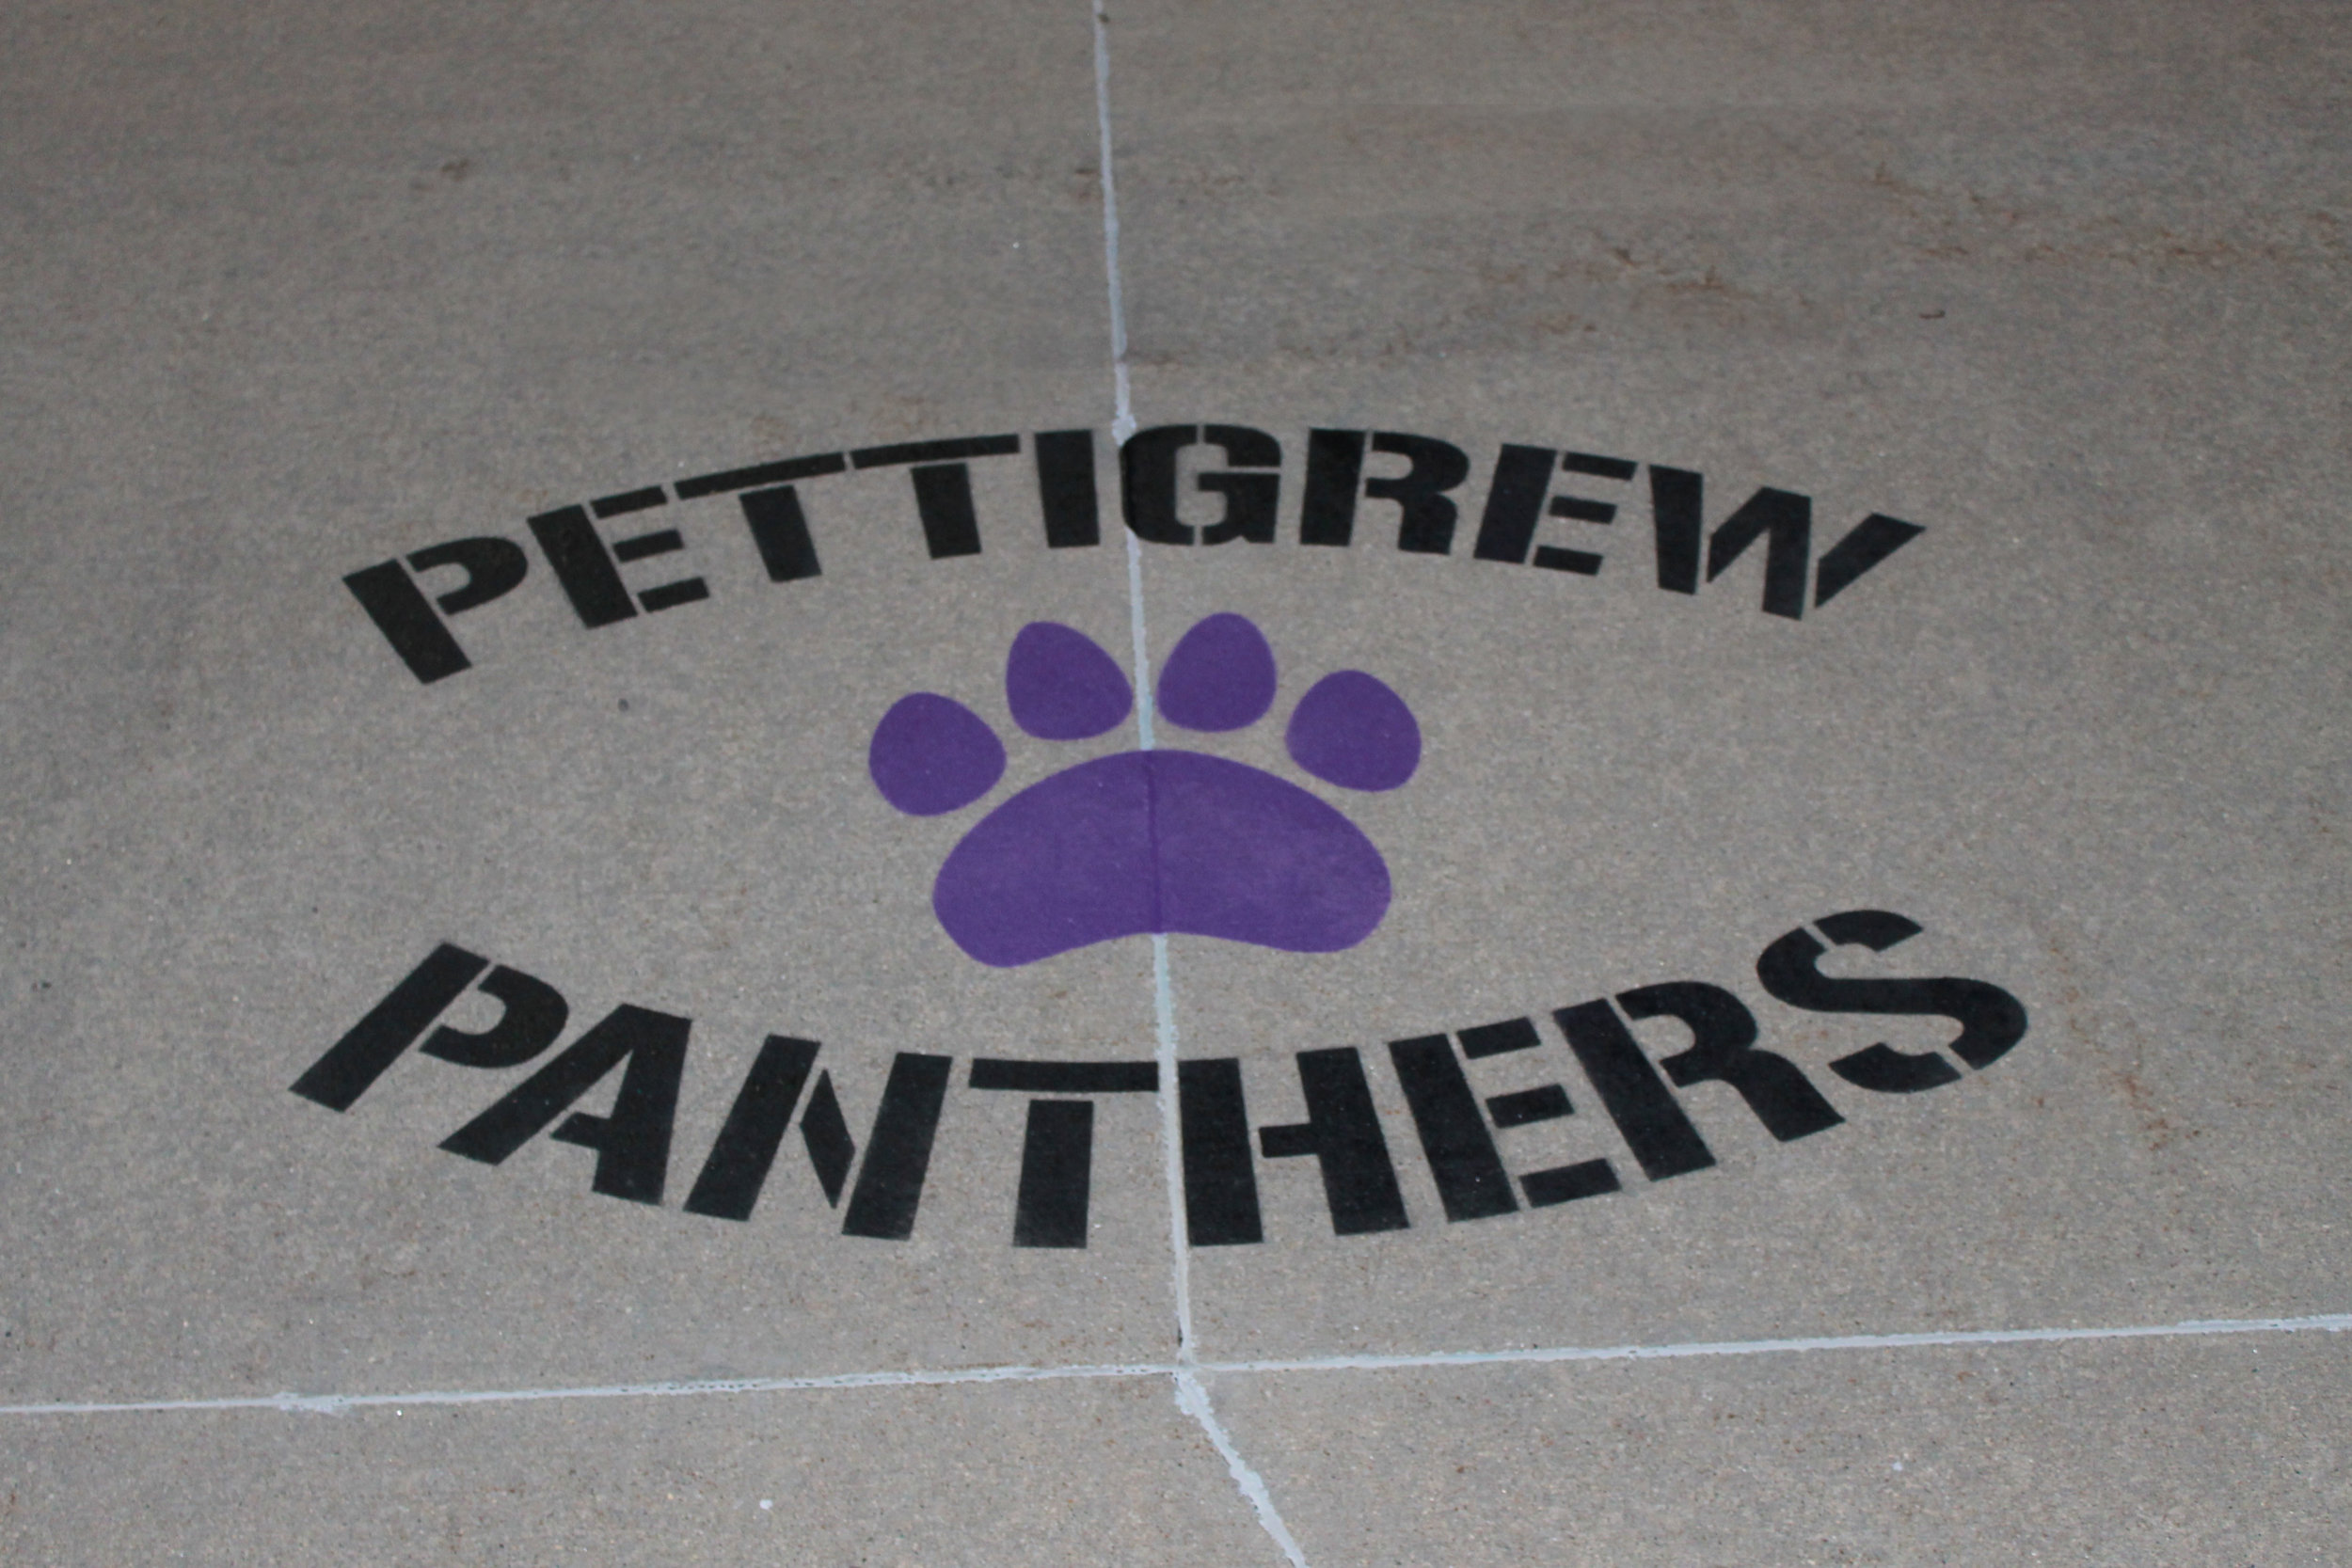 Image of Pettigrew Panthers stencil painted in front of the school.